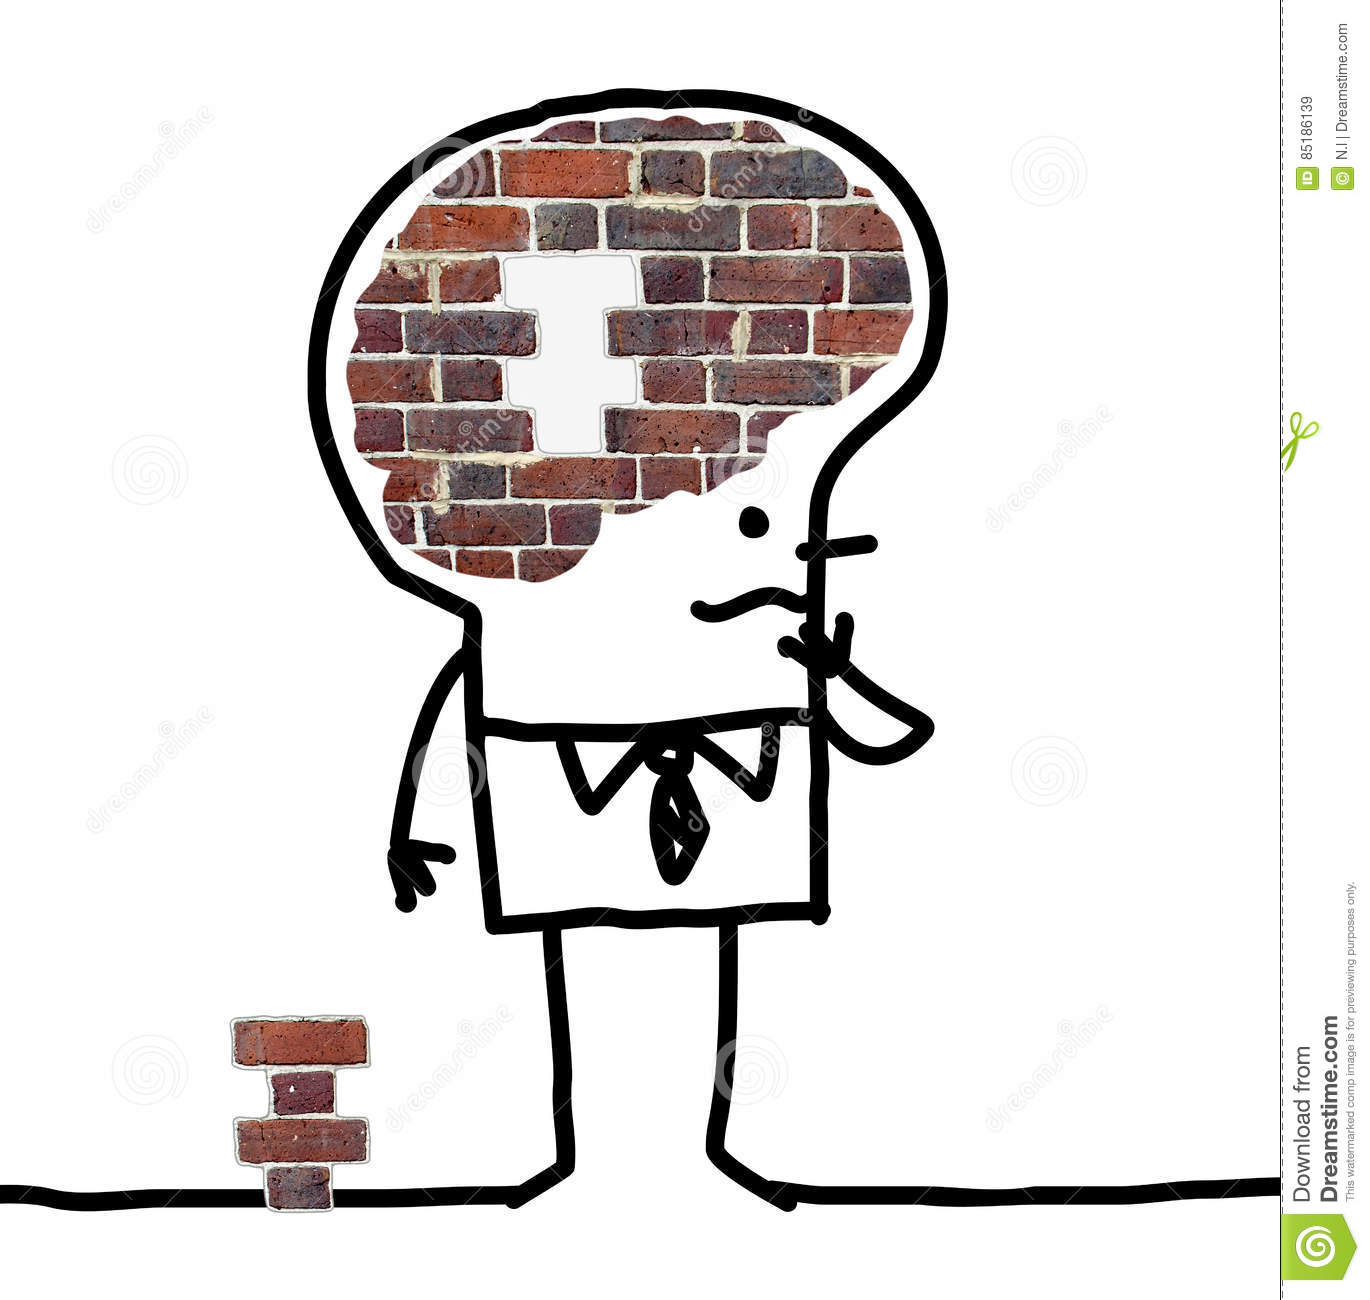 Big brain man wall and puzzle stock illustration illustration of download big brain man wall and puzzle stock illustration illustration of background bricks thecheapjerseys Gallery